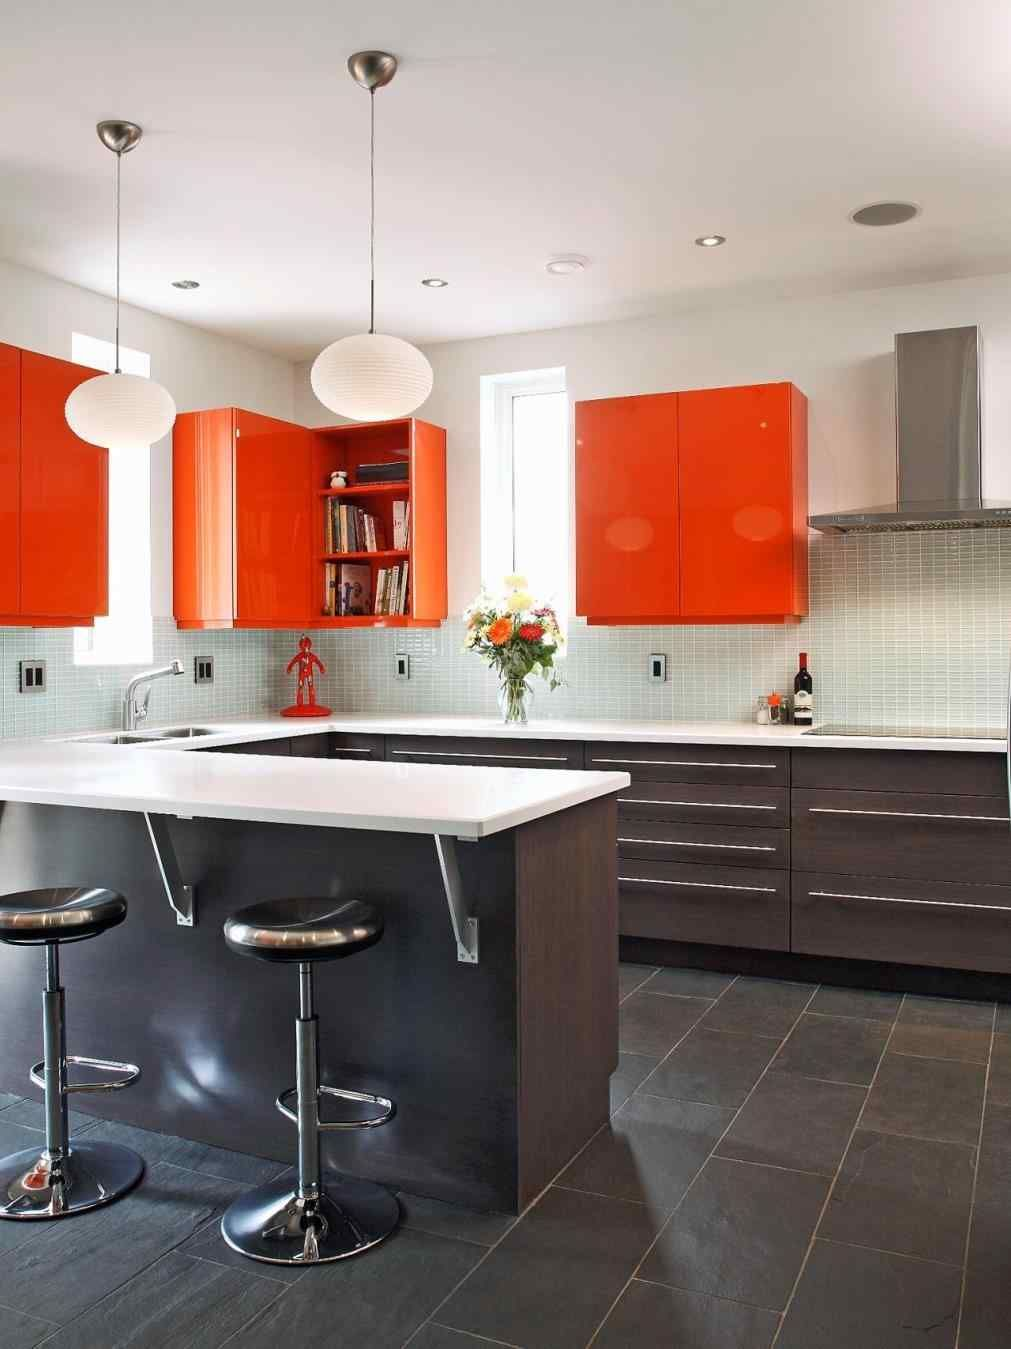 fresh and wonderful orange kitchen decorations for inspiration